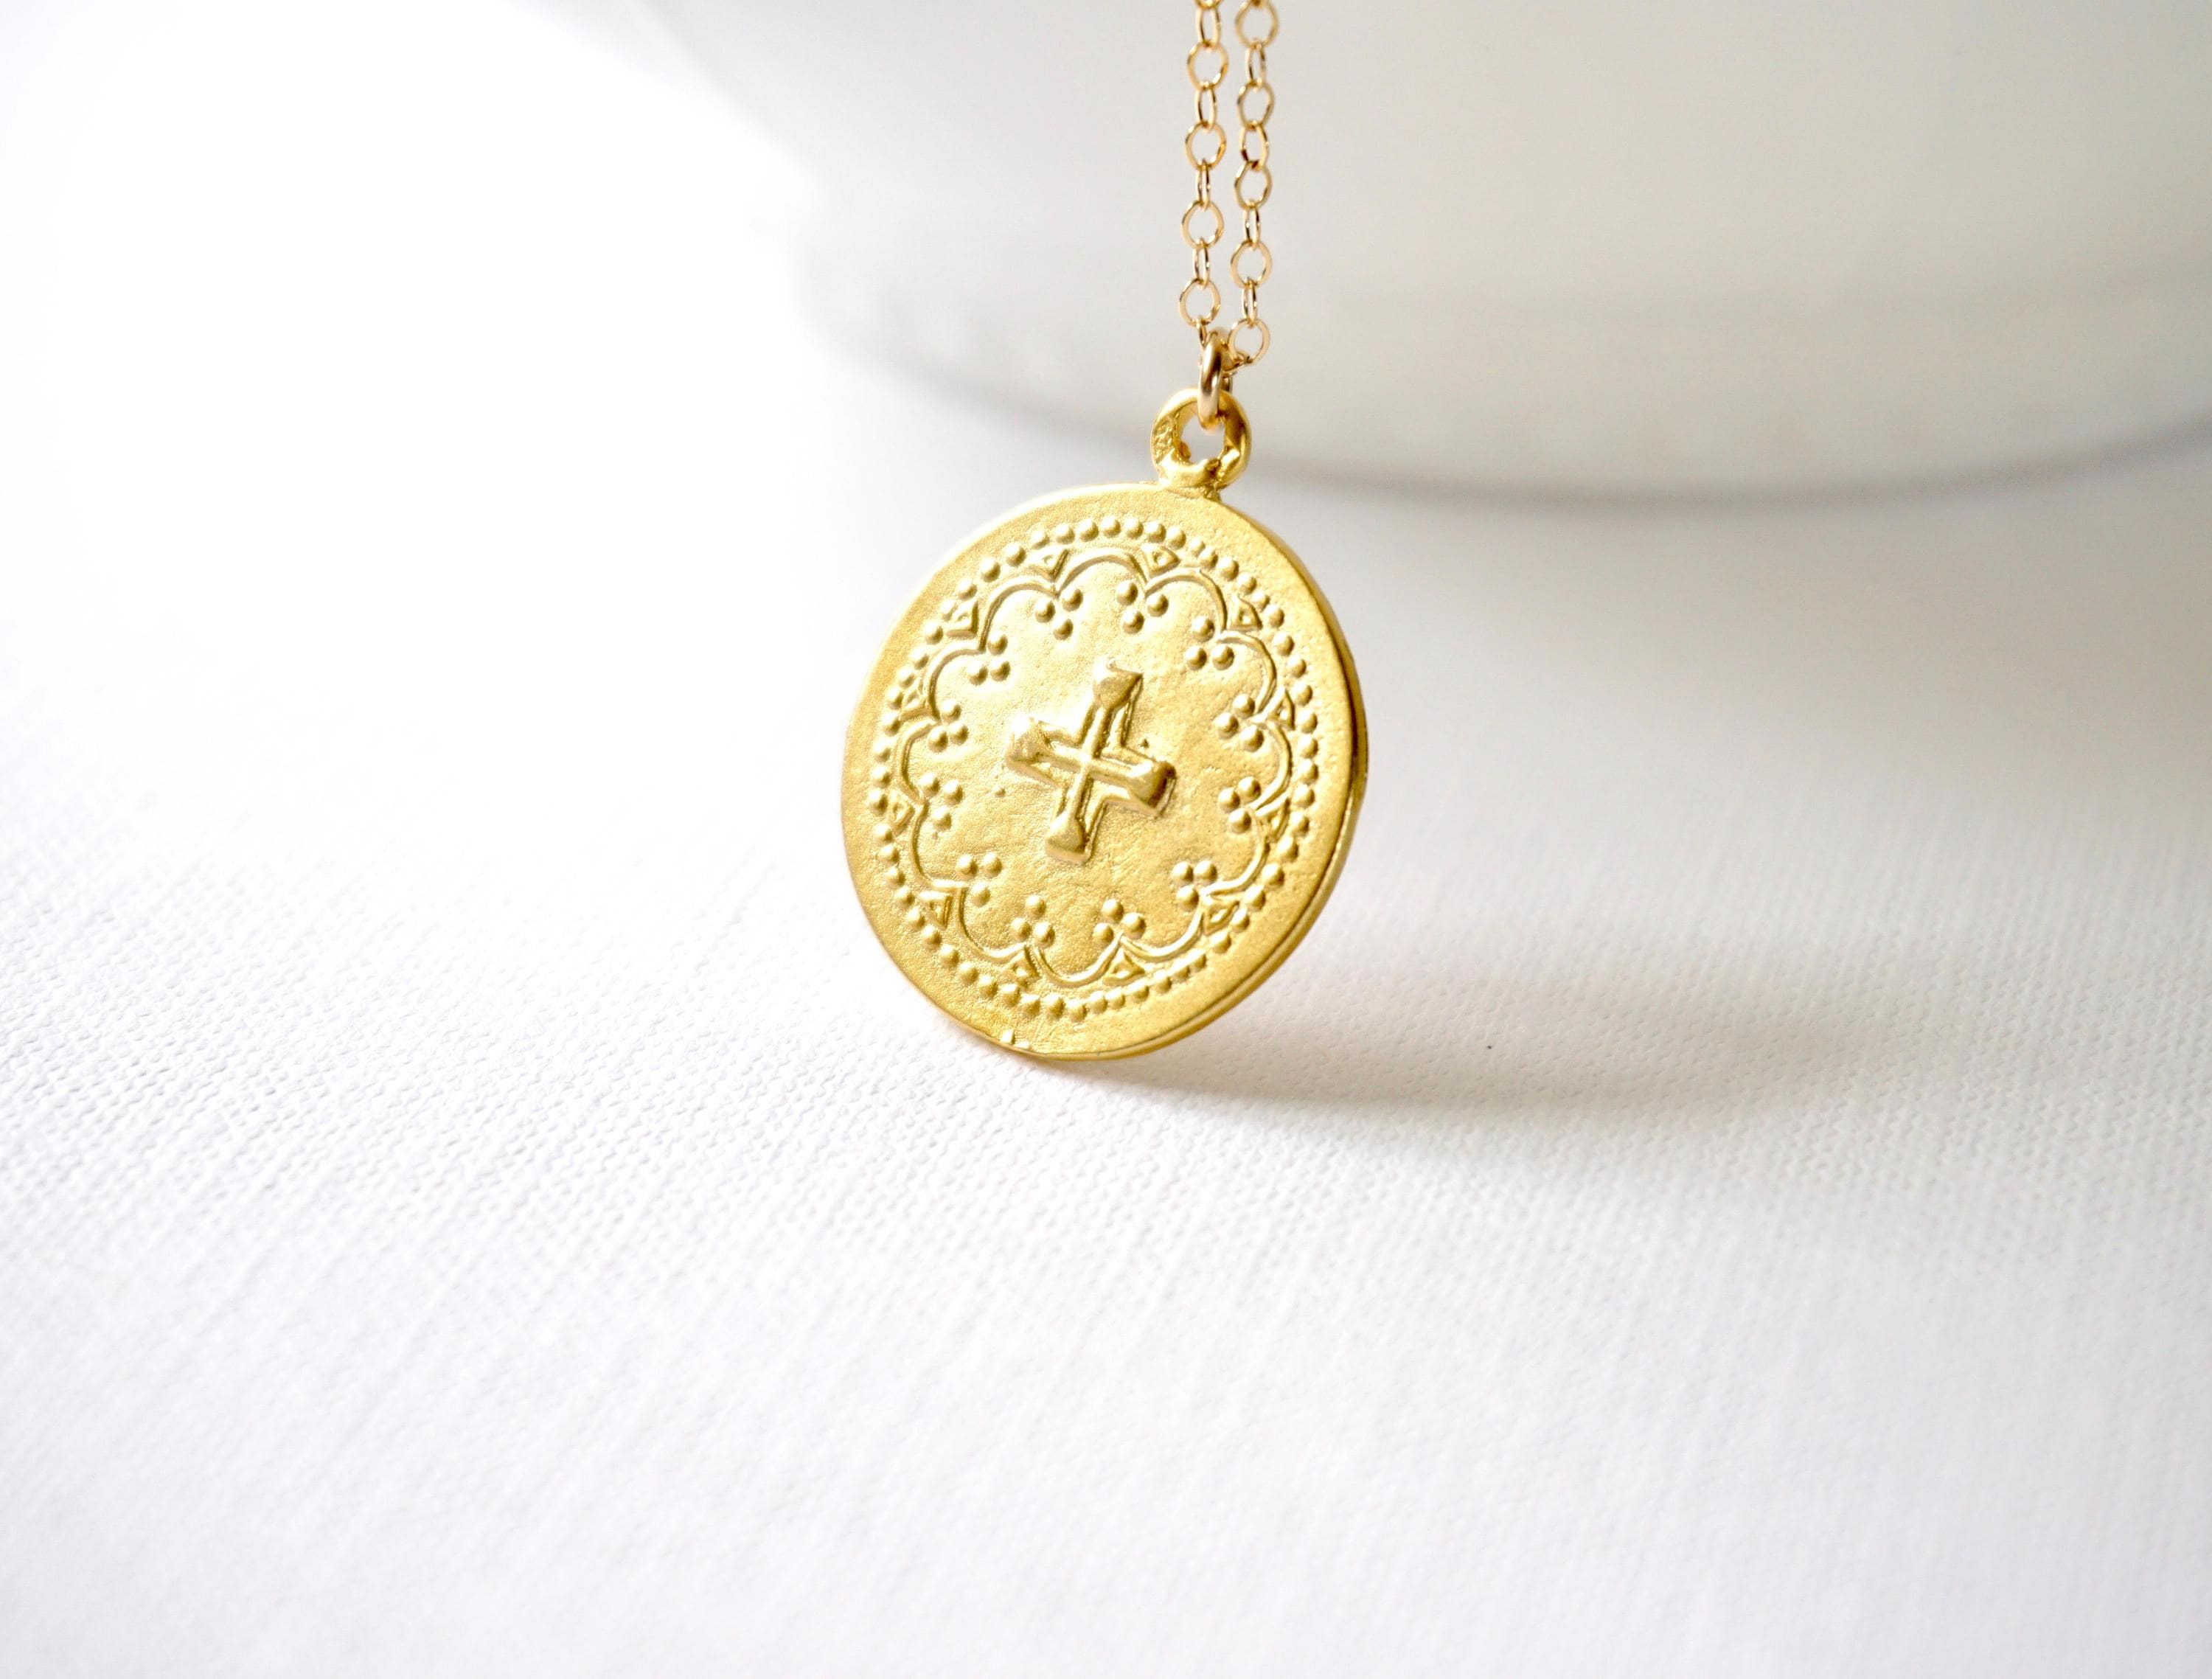 medallion pendant pin hands praying gold finish white